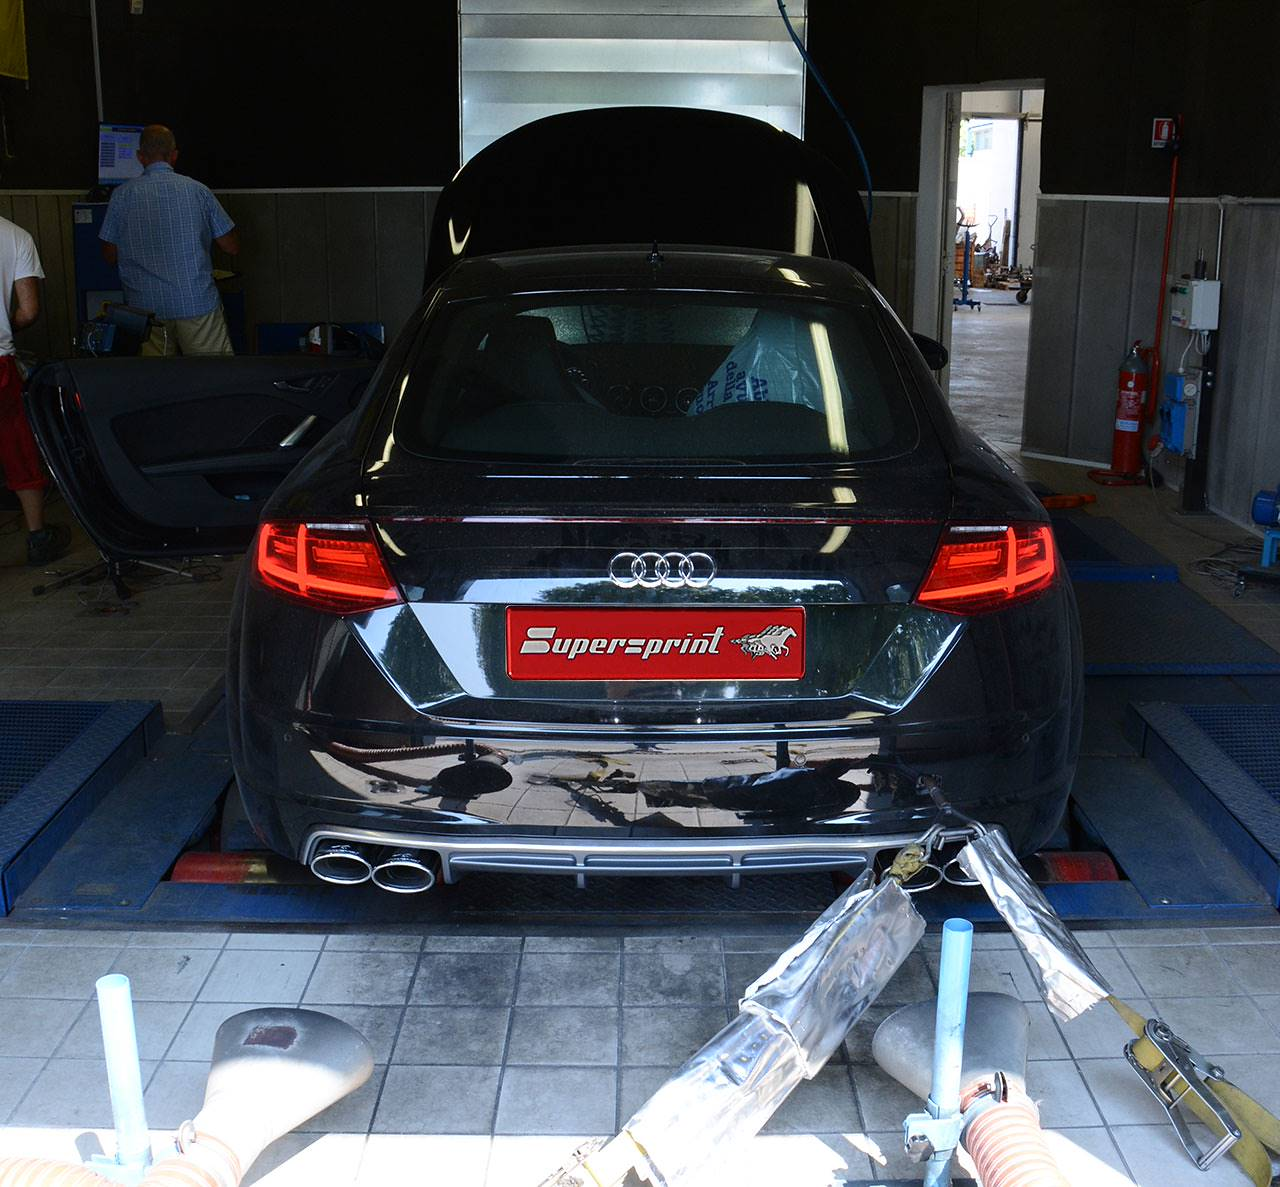 Full Supersprint exhaust for Audi TT mk3 - dyno testing